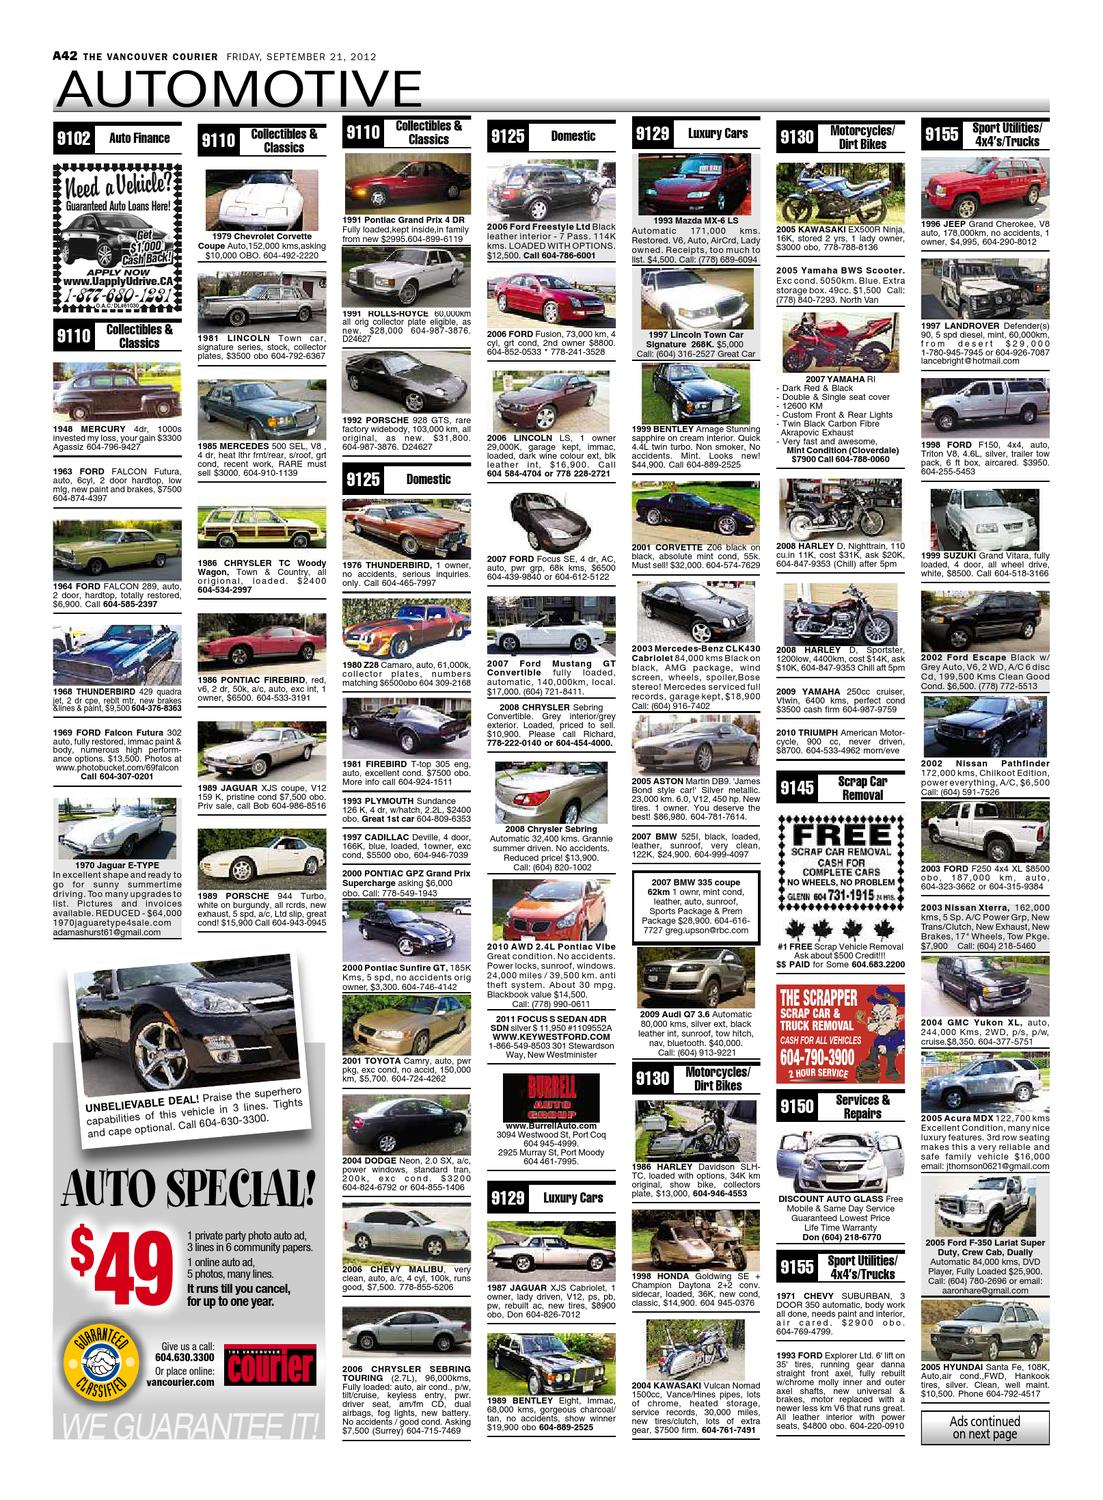 Vancouver Courier September 21 2012 by Glacier Digital - issuu